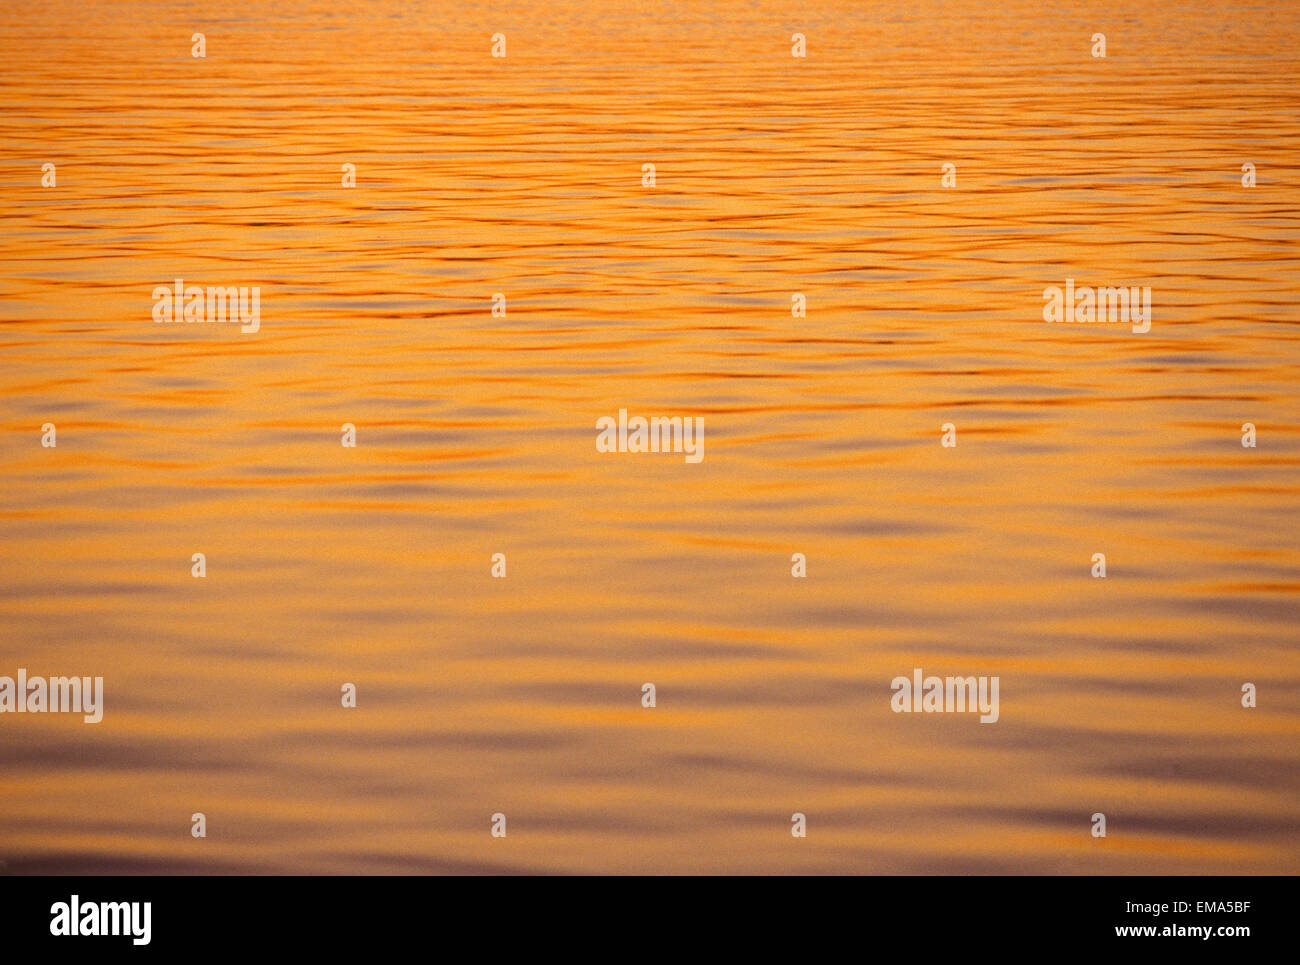 Ocean Shimmering Surface With Sunset Reflections Beautiful Orange Color - Stock Image